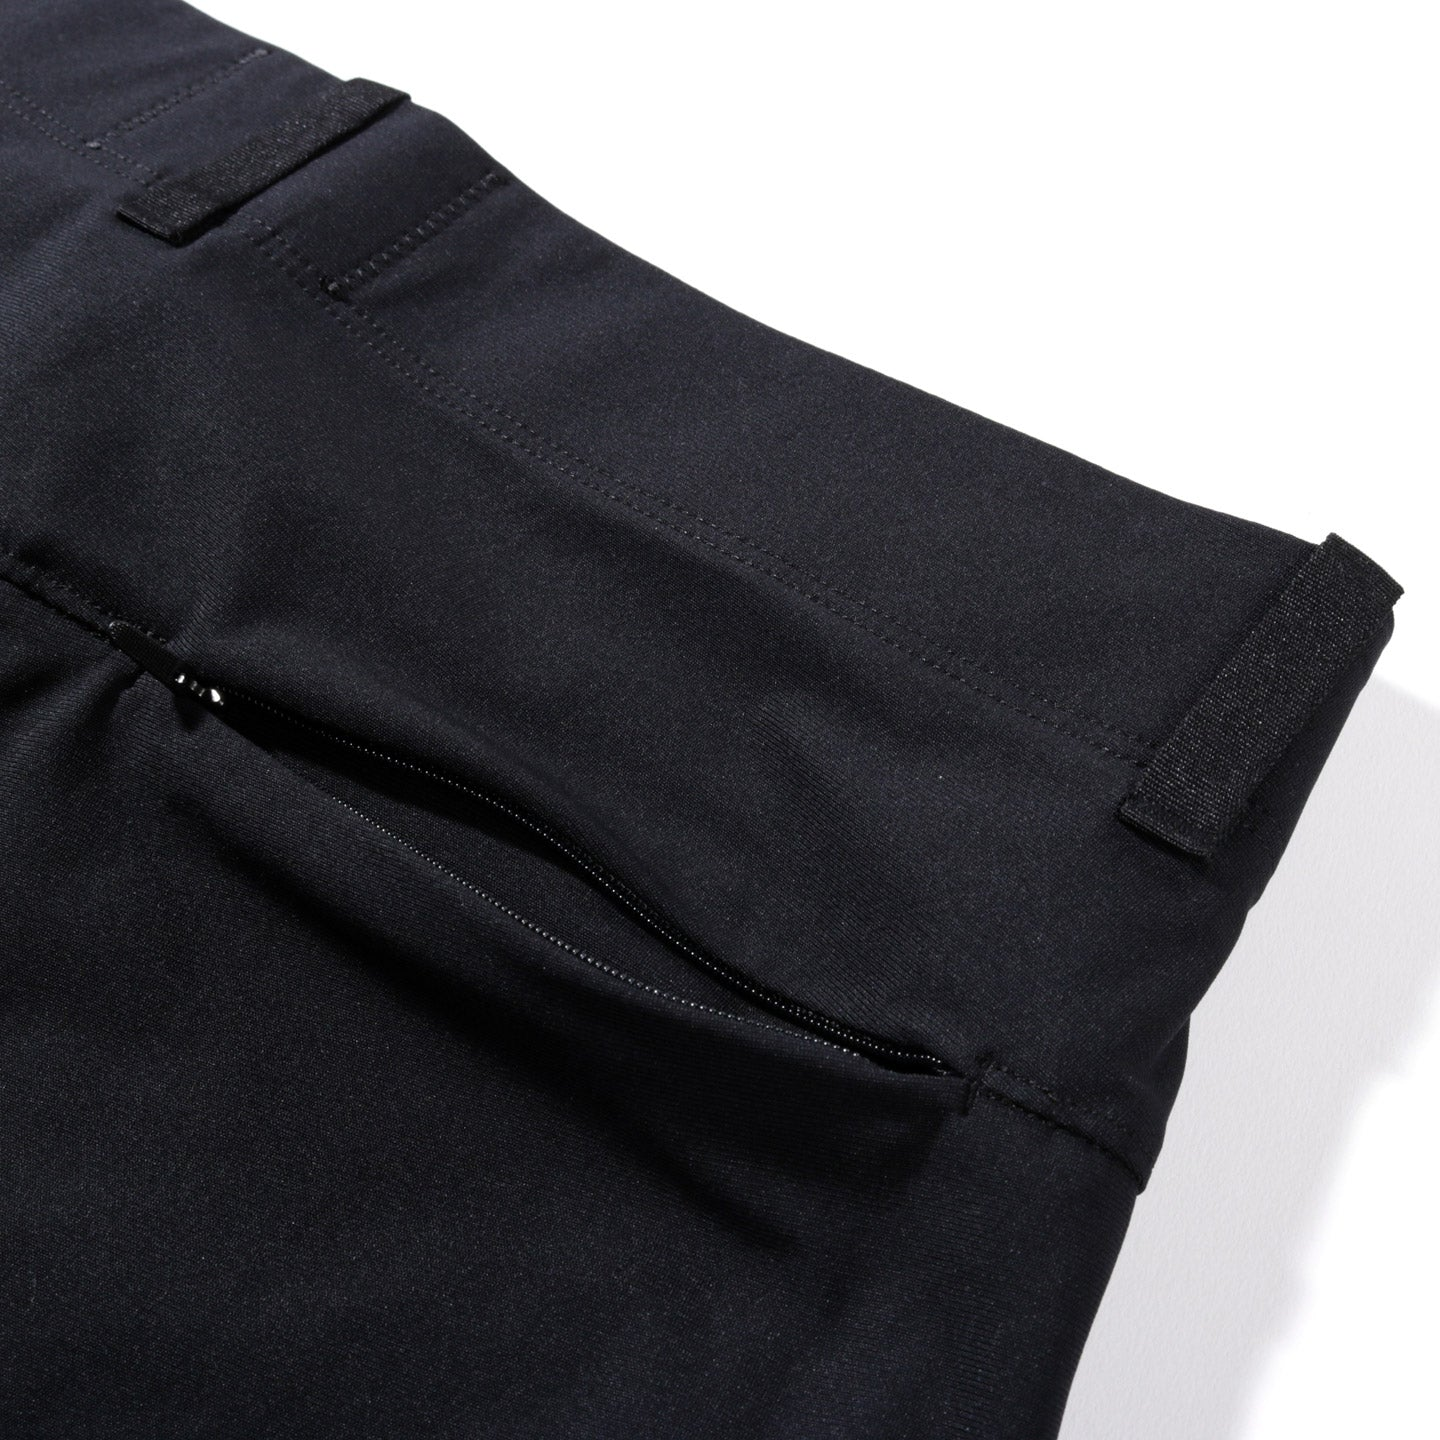 REIGNING CHAMP STRETCH NYLON PANTS BLACK